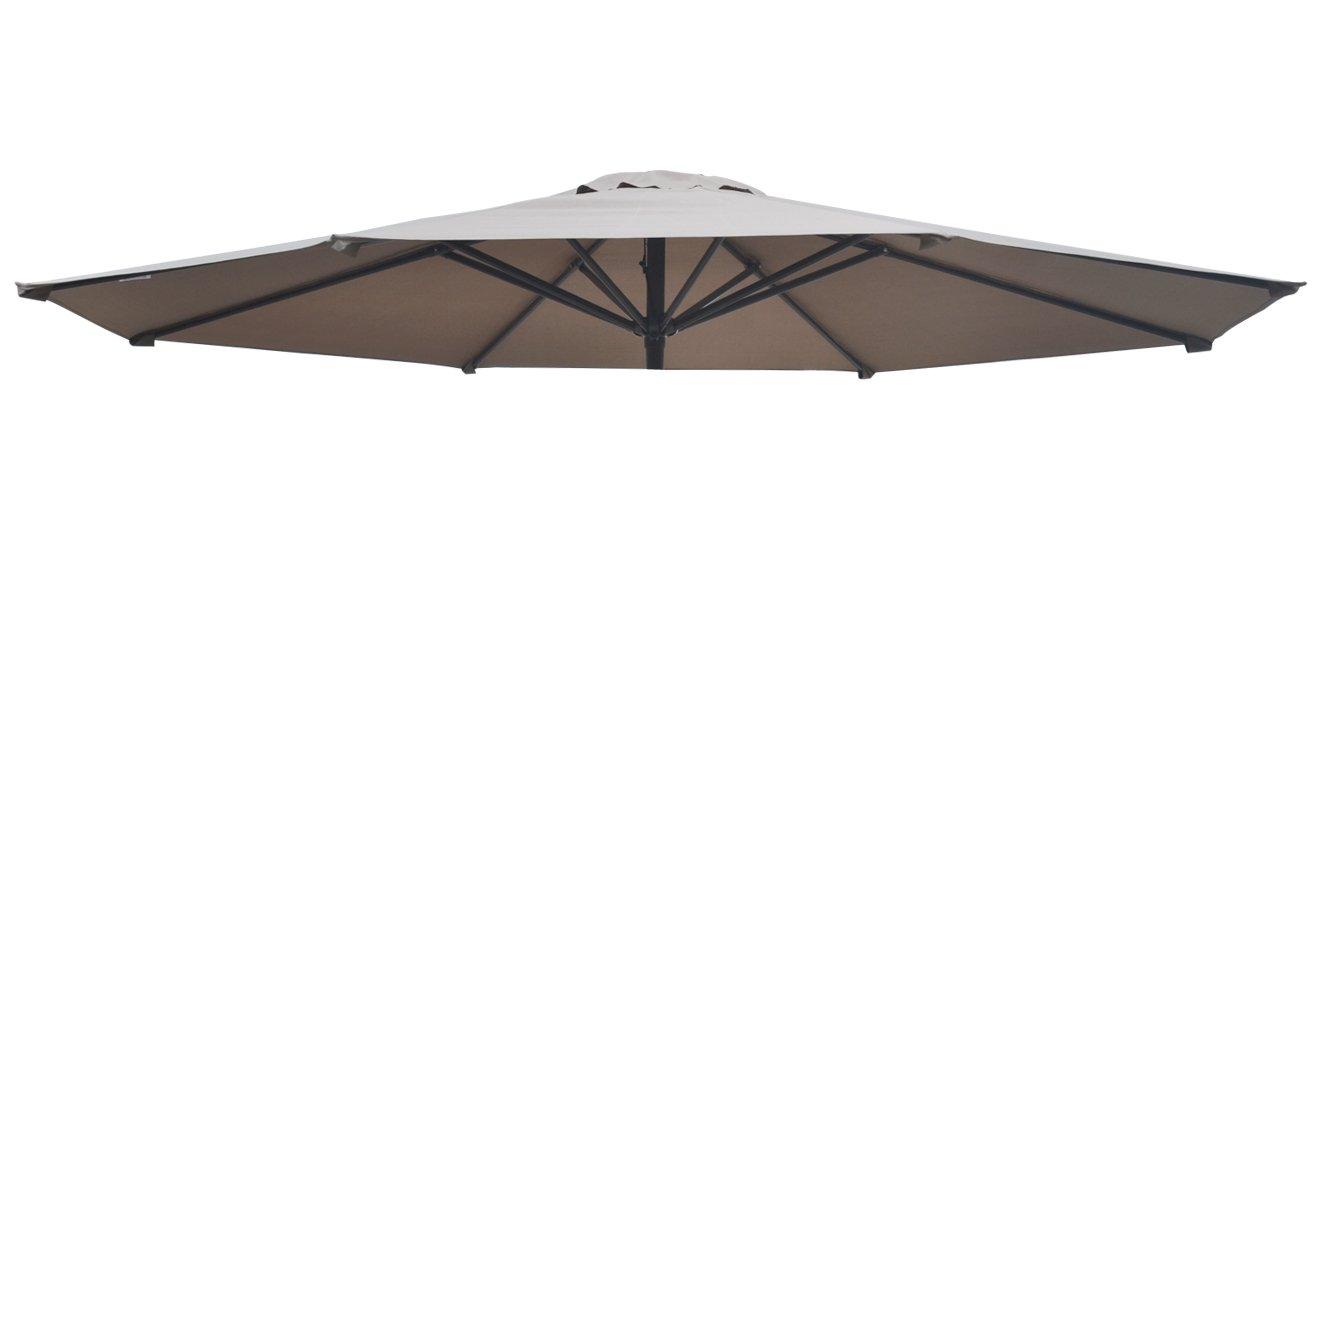 Amazon.com : Replacement Patio Umbrella Canopy Cover For 11.5ft 8 Ribs  Umbrella Taupe (CANOPY ONLY) BROWN : Garden U0026 Outdoor